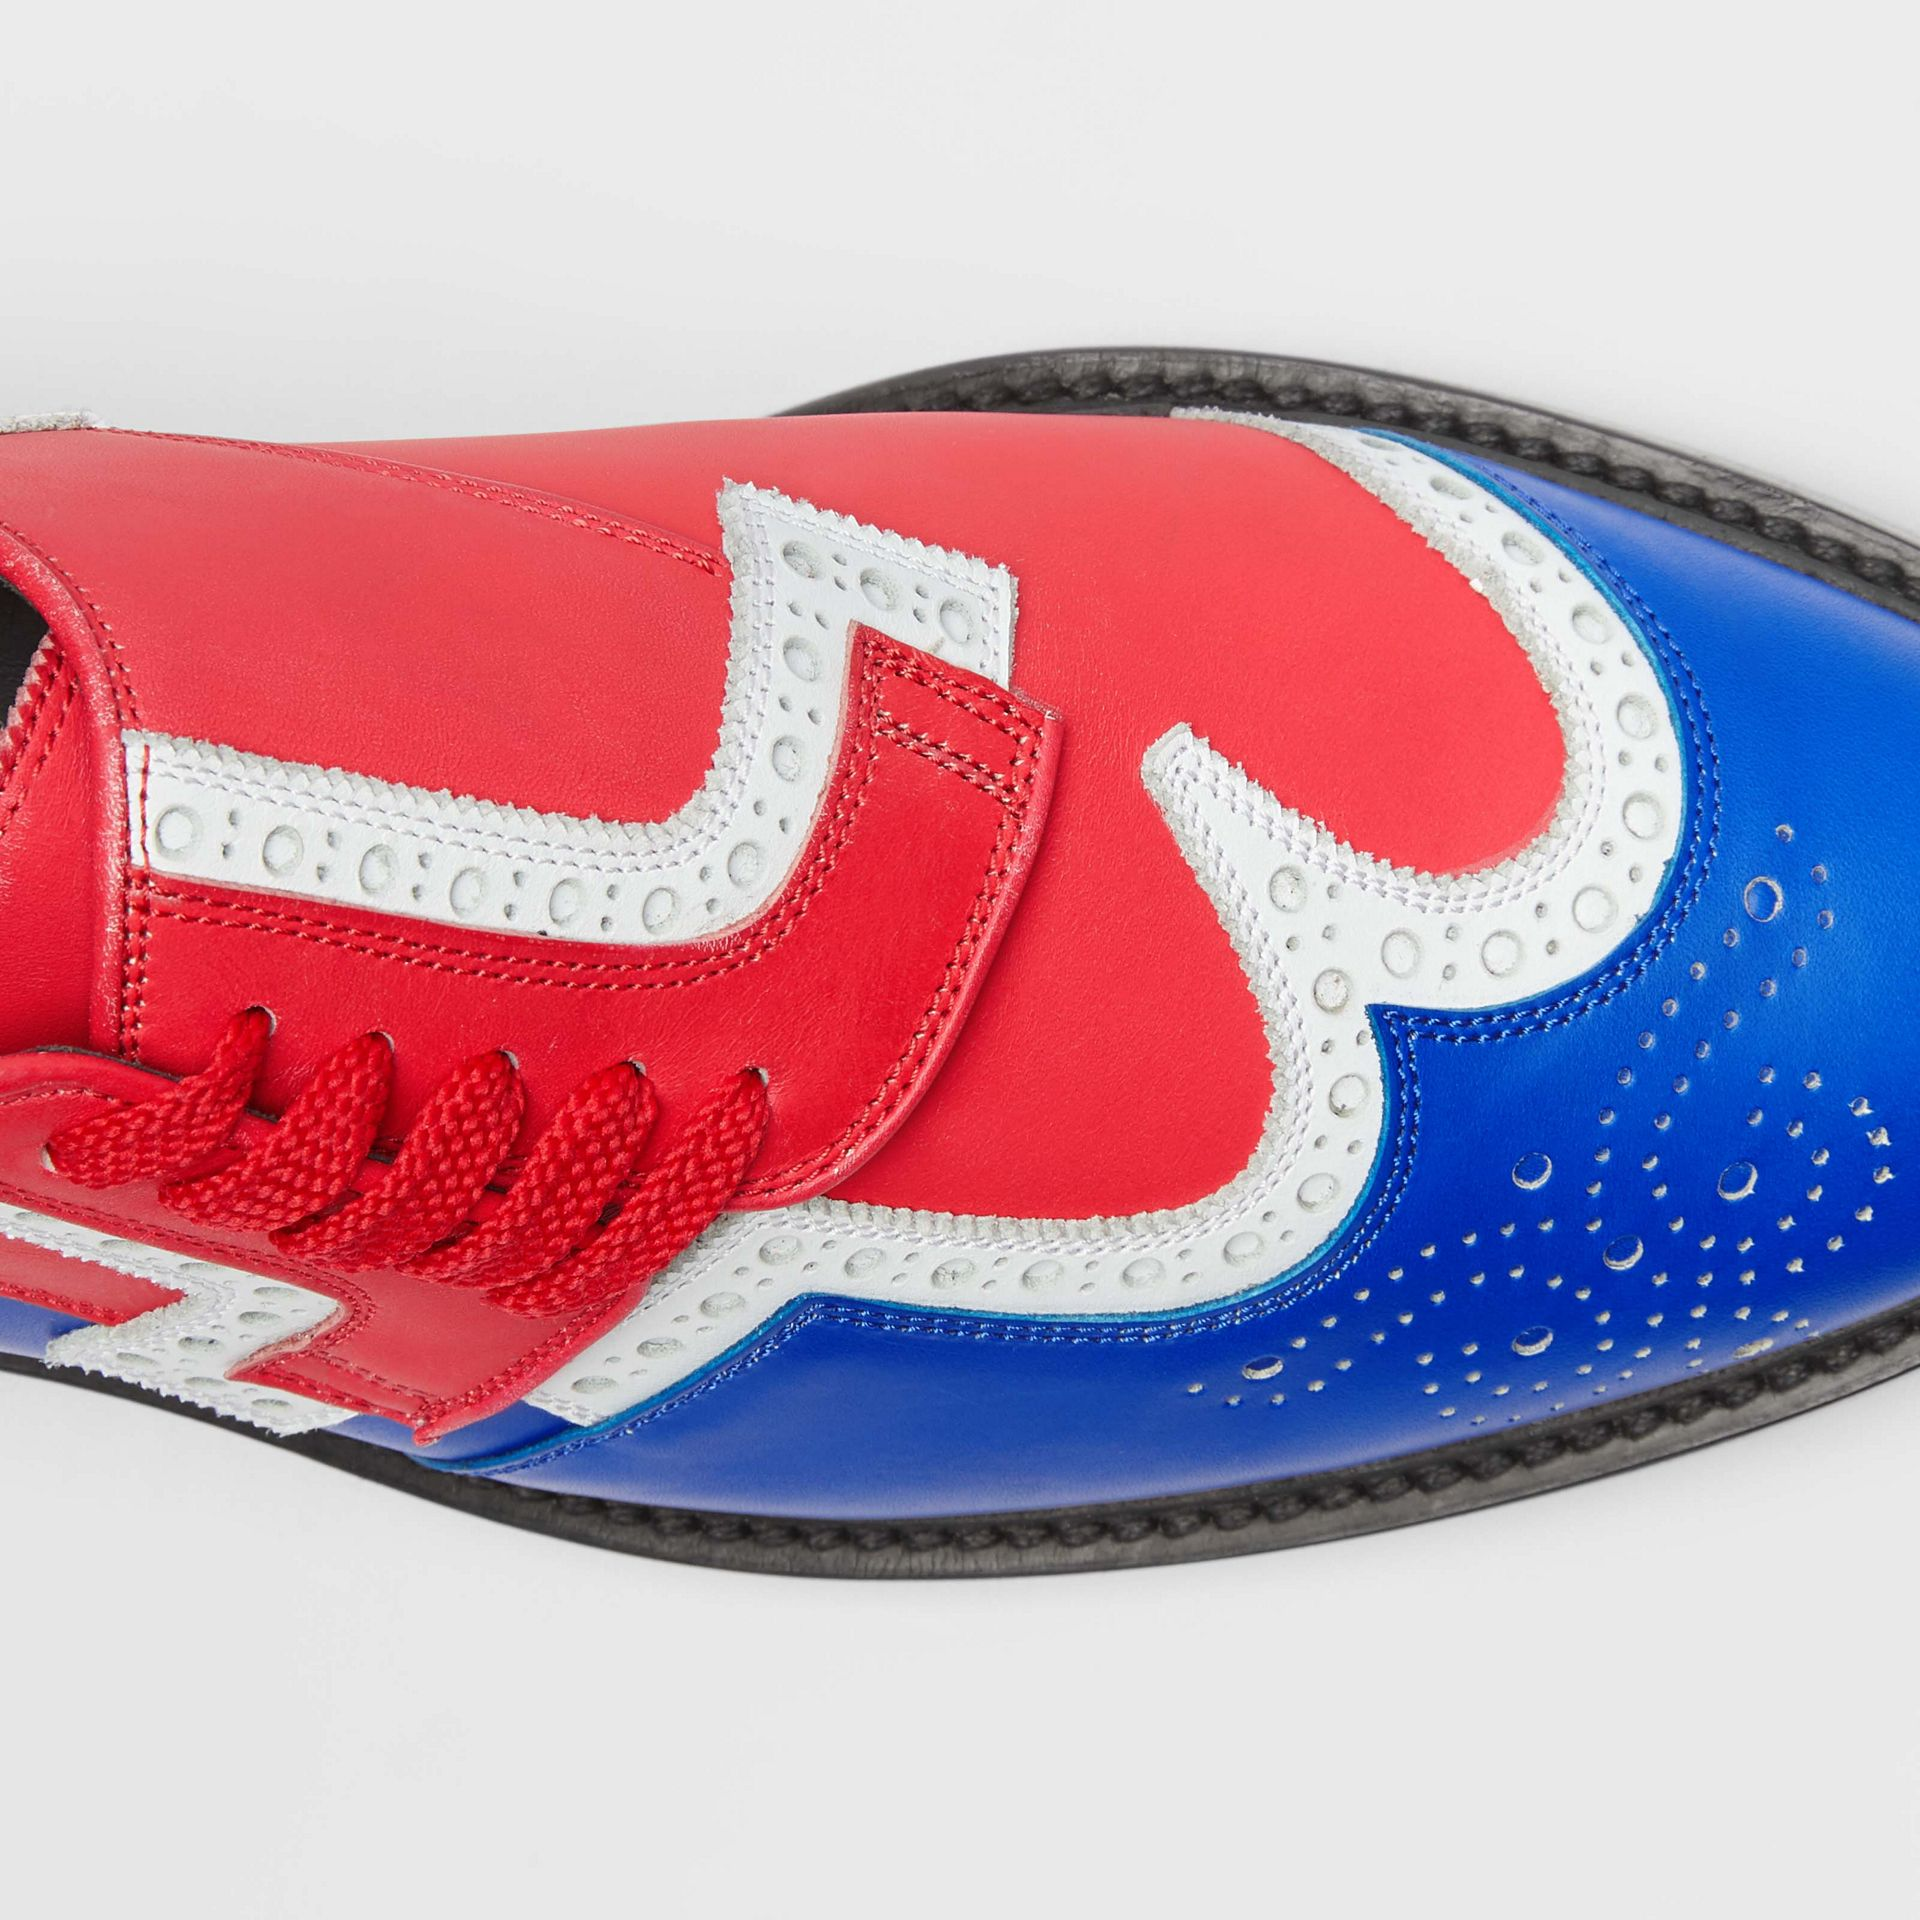 Asymmetric Closure Tri-tone Leather Brogues in Blue/red - Men | Burberry United Kingdom - gallery image 1